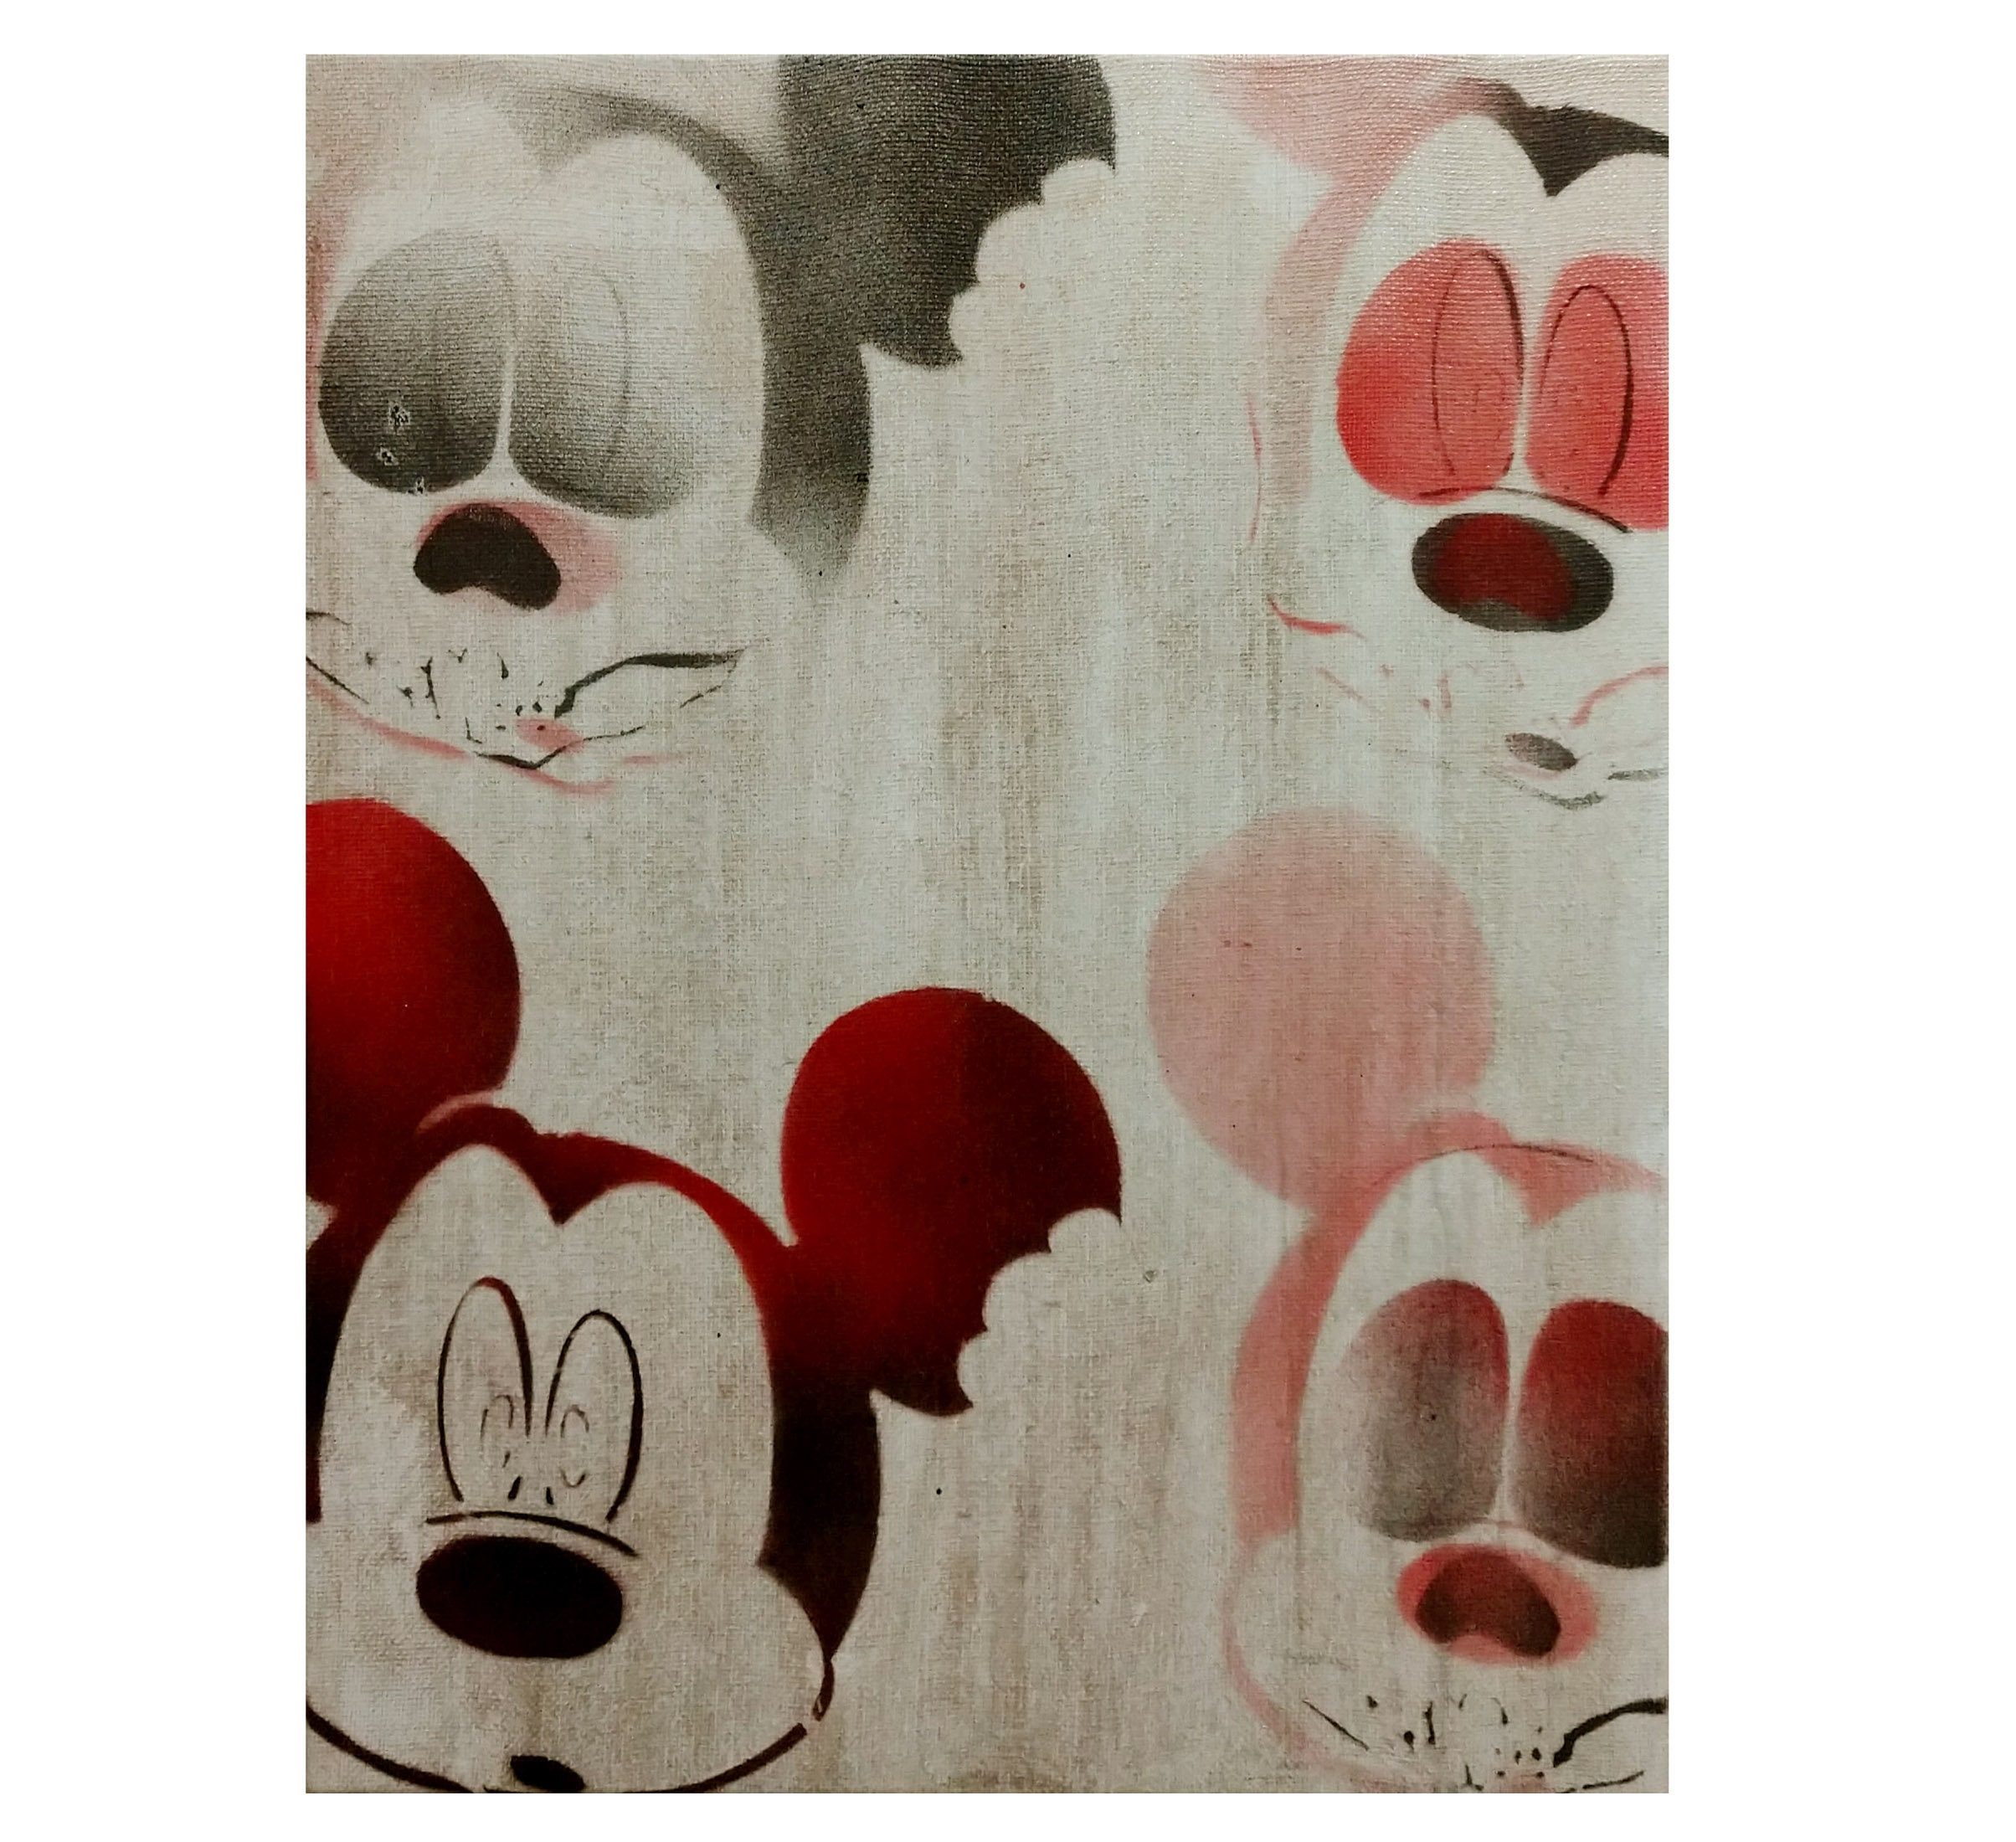 2fdfb14b58ec Zombie Mickey Mouse Painting Original Graffiti Art on Canvas